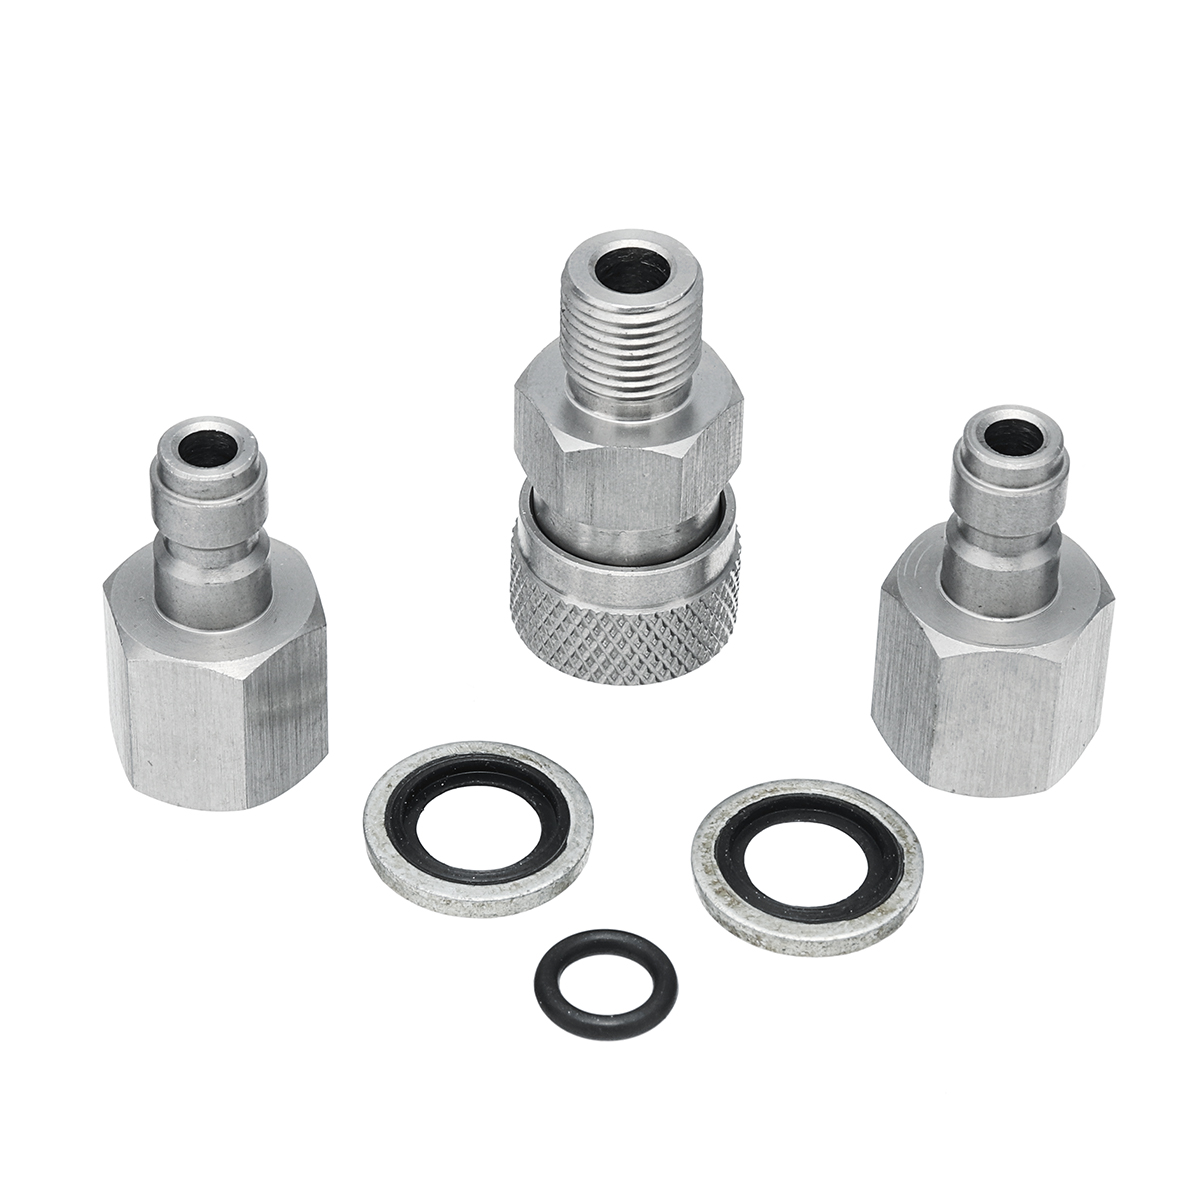 Stainless PCP Air Gun Filling Quick Connect Adapter 1/8 BSPP With Plugs Fitting Connector Coupler